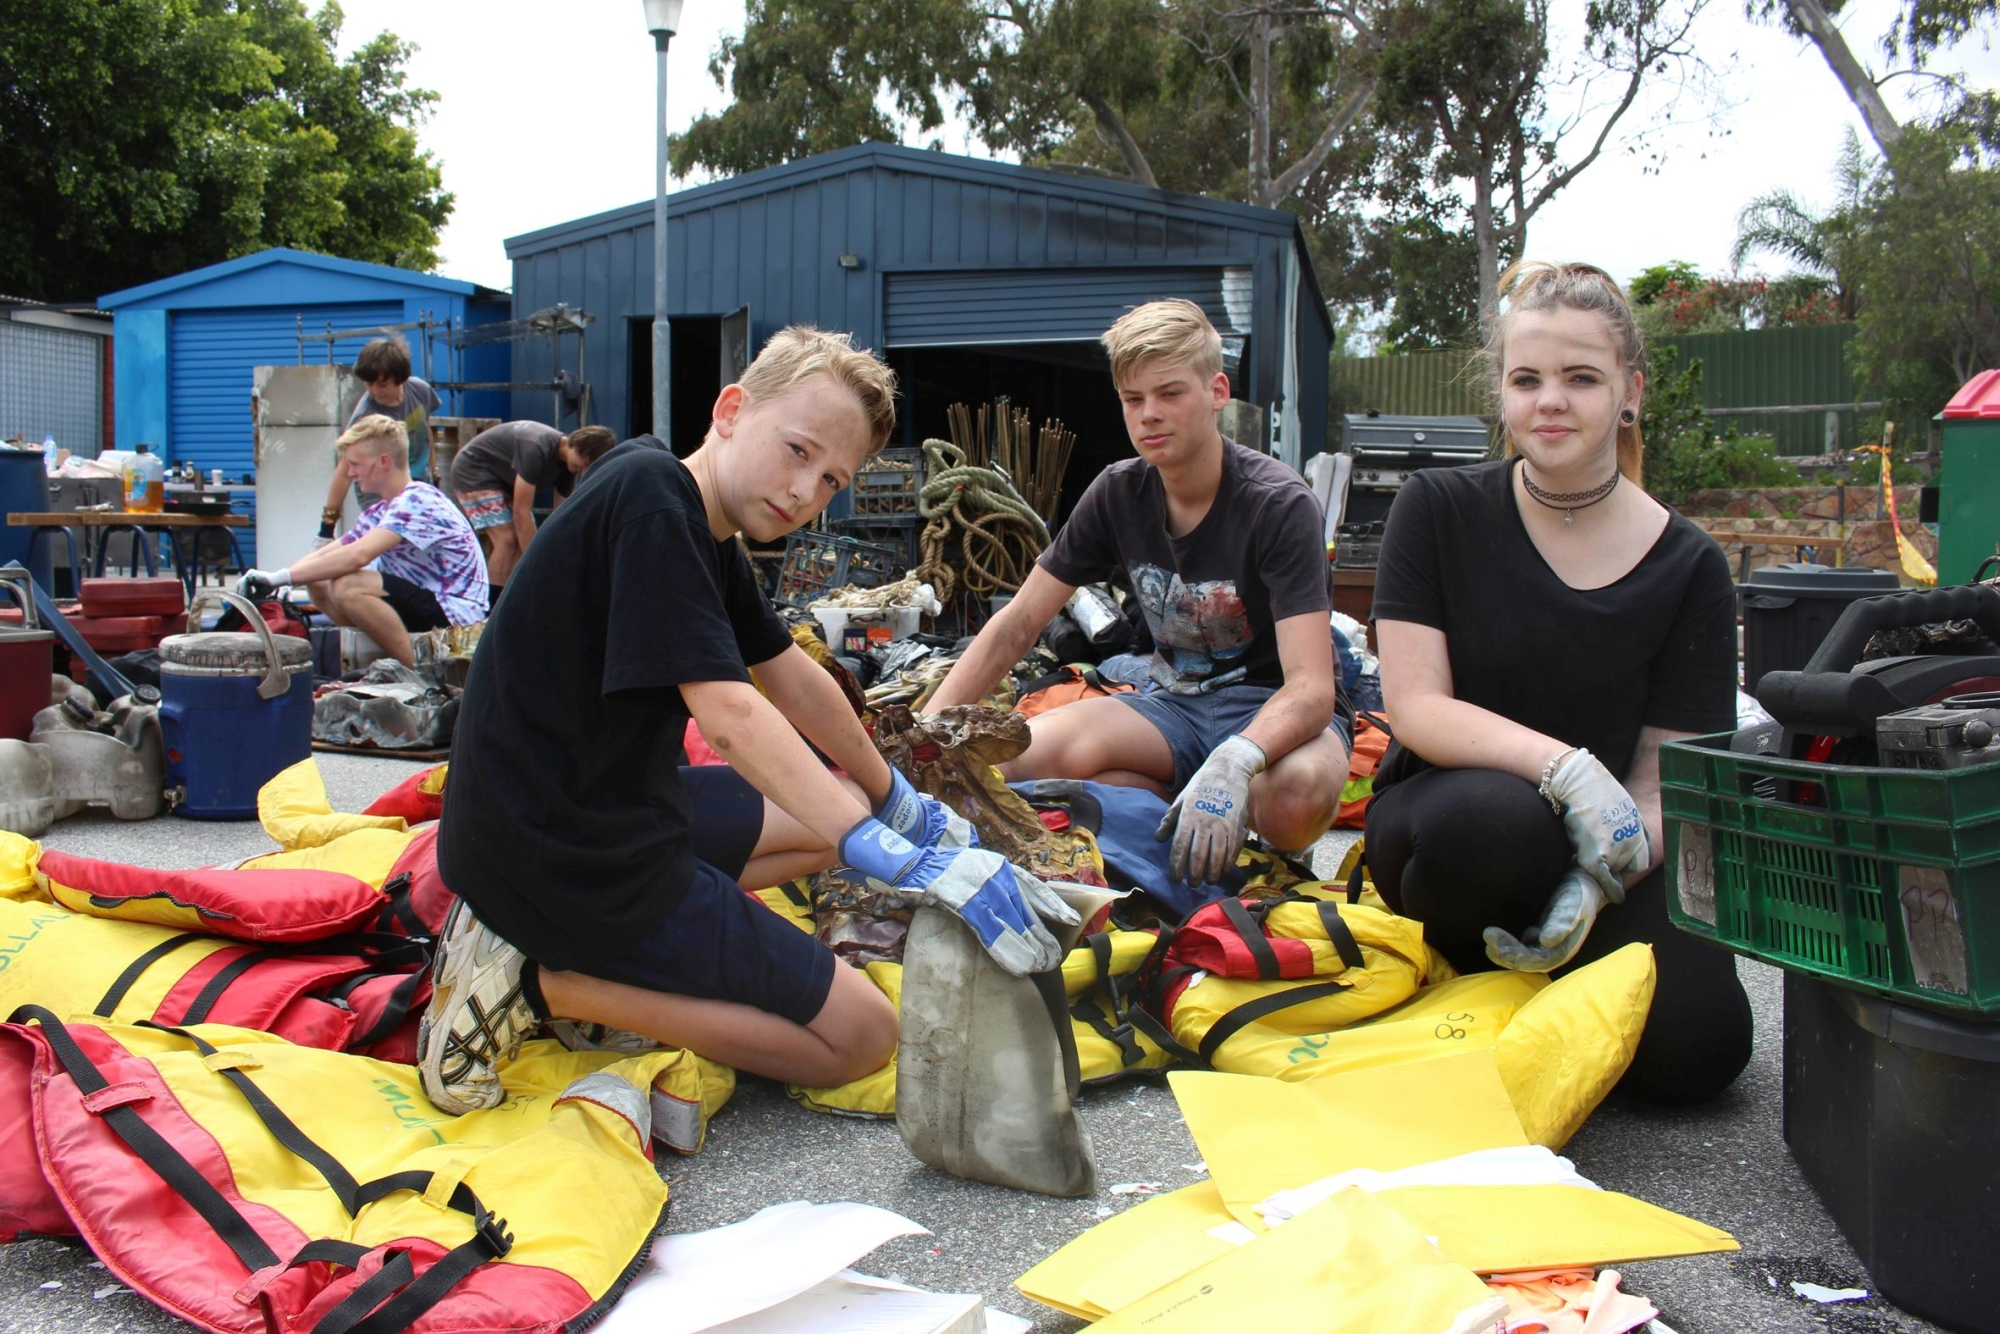 Angry, annoyed: Jacob Evans, Brendan Keilar and Holly Calacob take part in the clean-up after the arson attack.